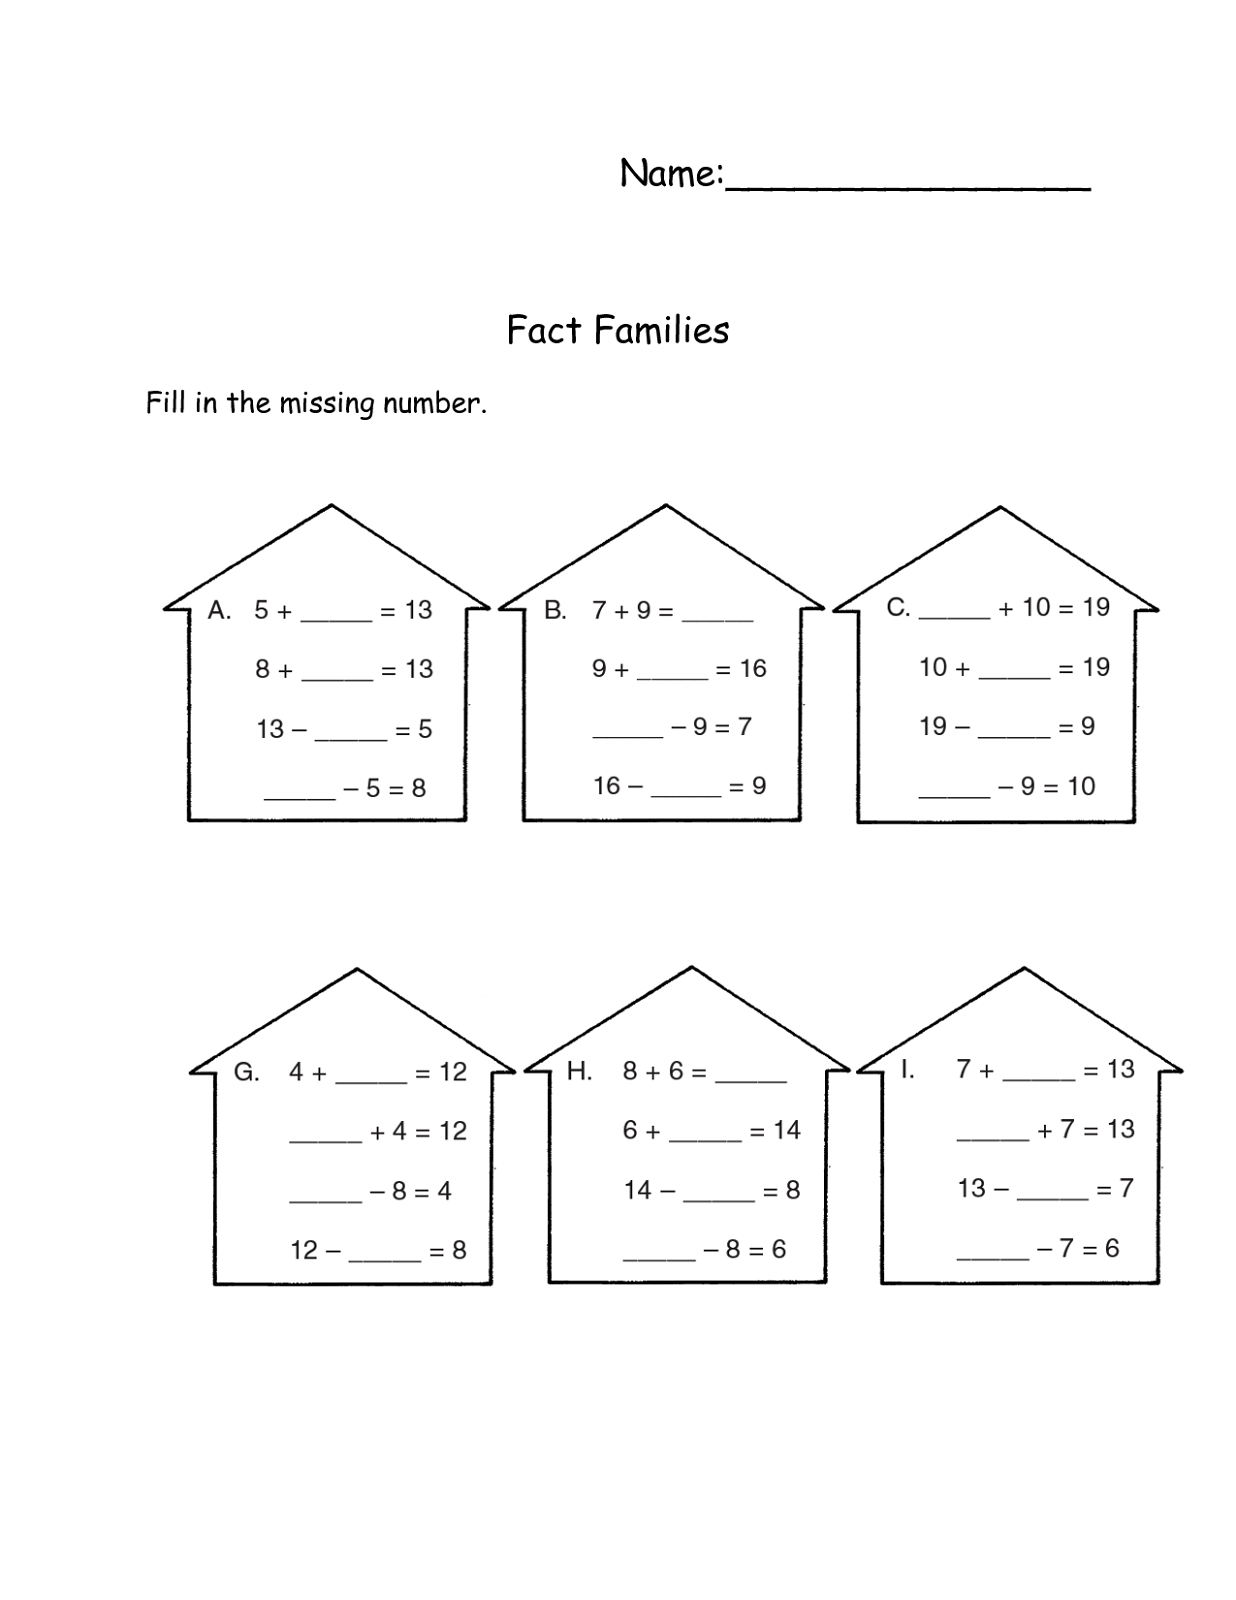 Worksheet 612792 Fact Families Multiplication and Division – Fact Family Worksheets Multiplication